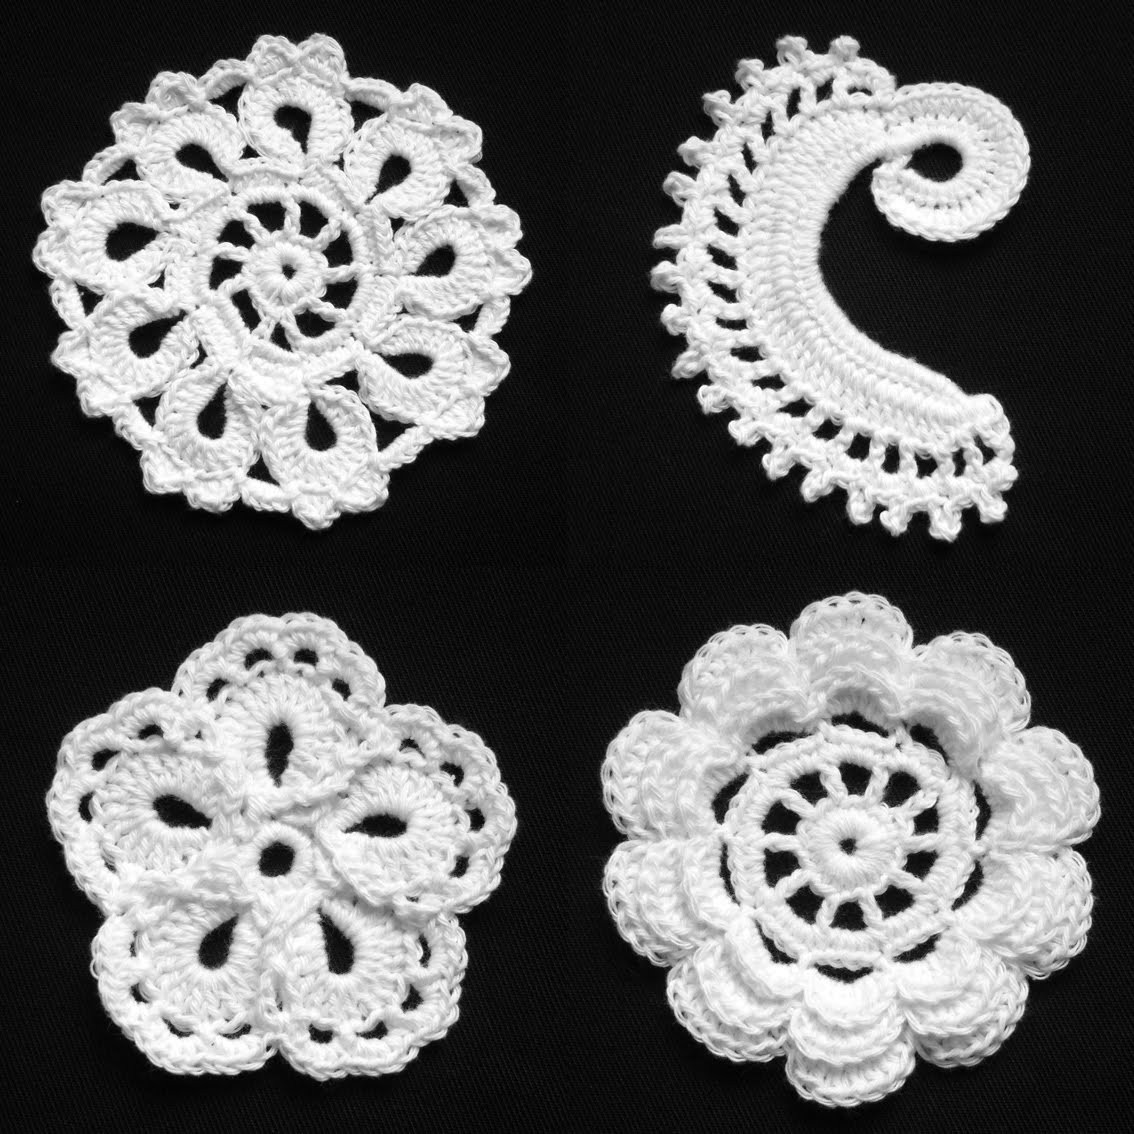 Elegant Irish Lace Patterns Free Patterns Irish Crochet Lace Of Wonderful 42 Images Irish Crochet Lace